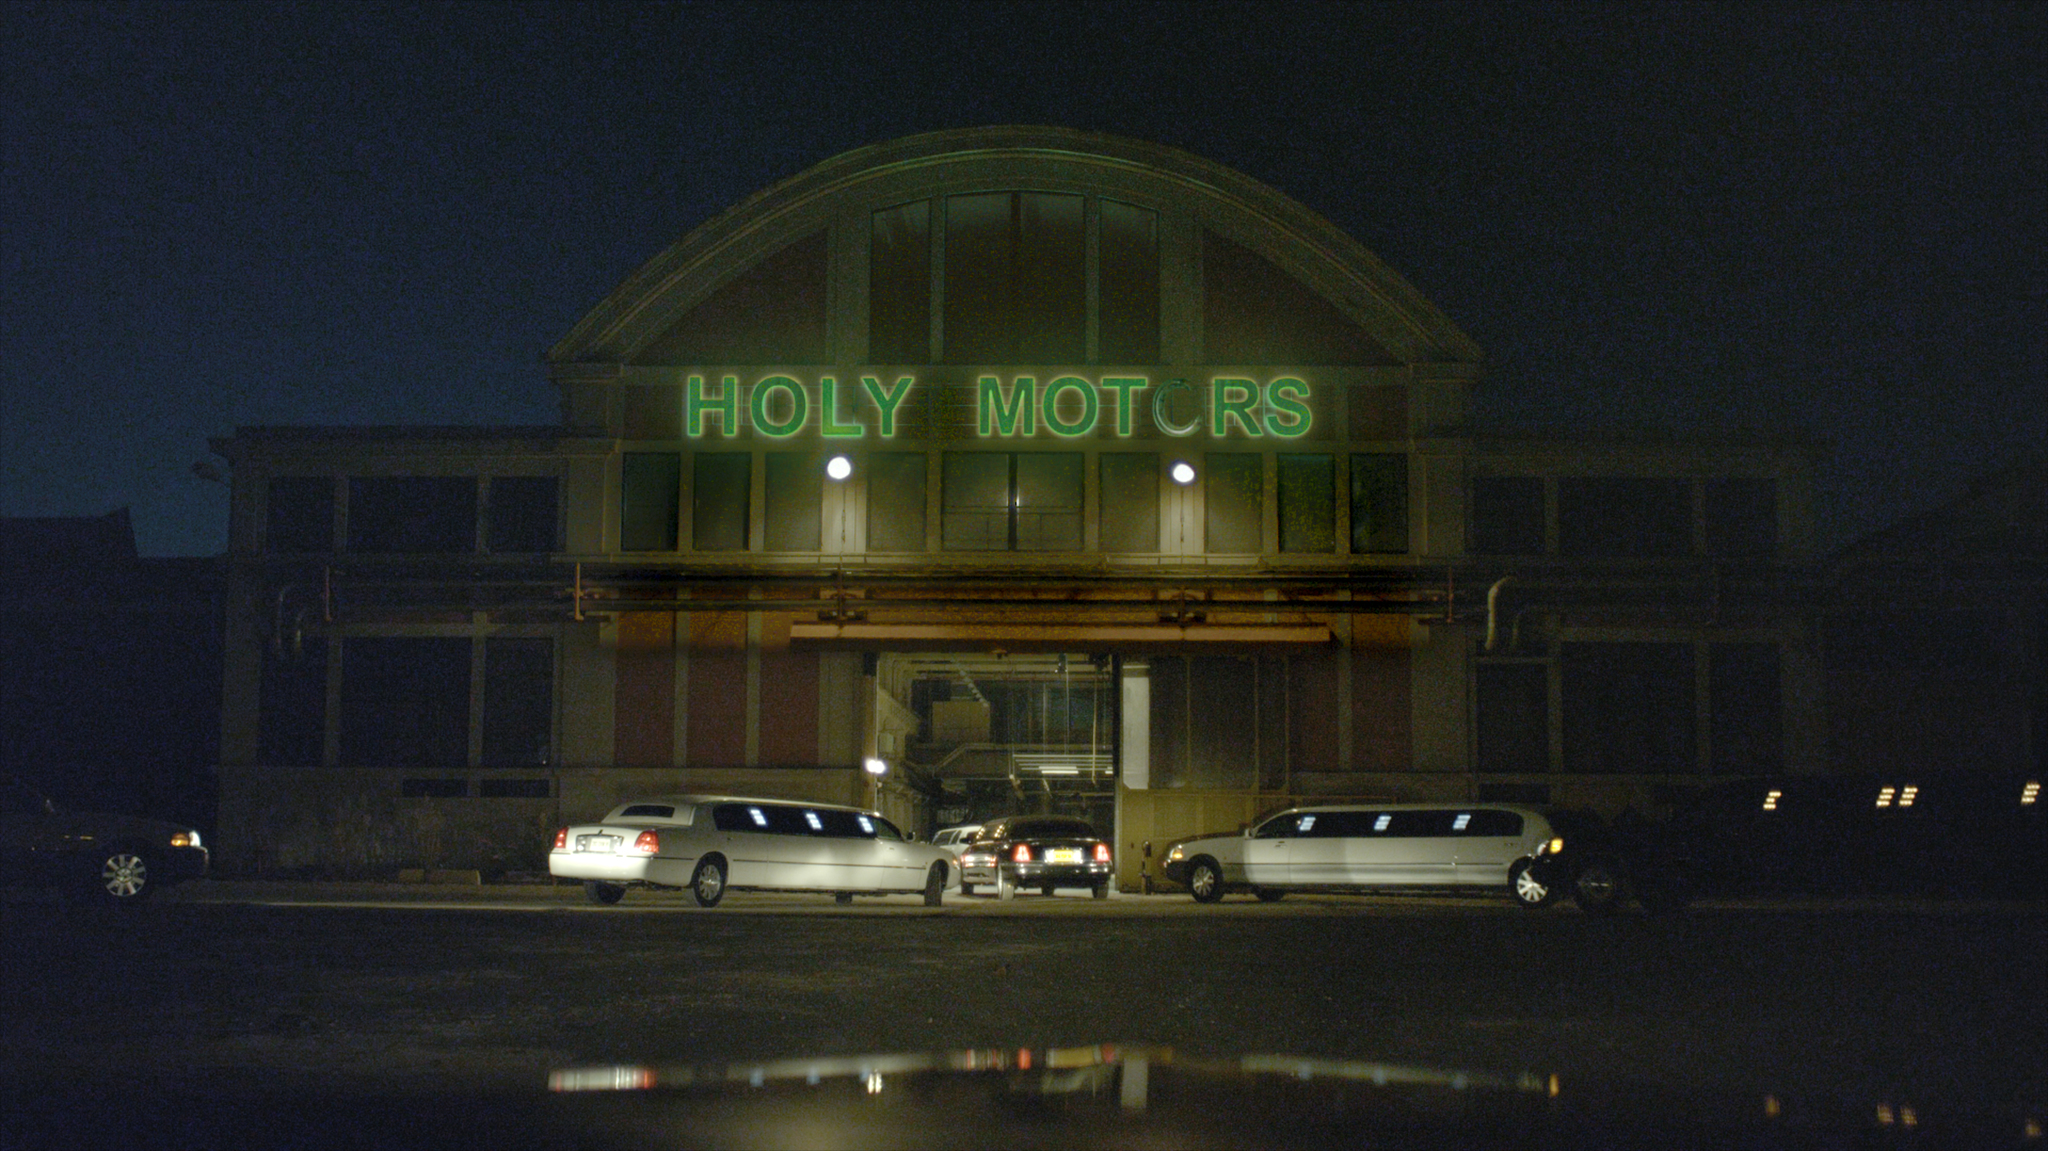 Holy motors - Leos Carax - 2012 dans * 2012 : Top 10 Holy-Motors